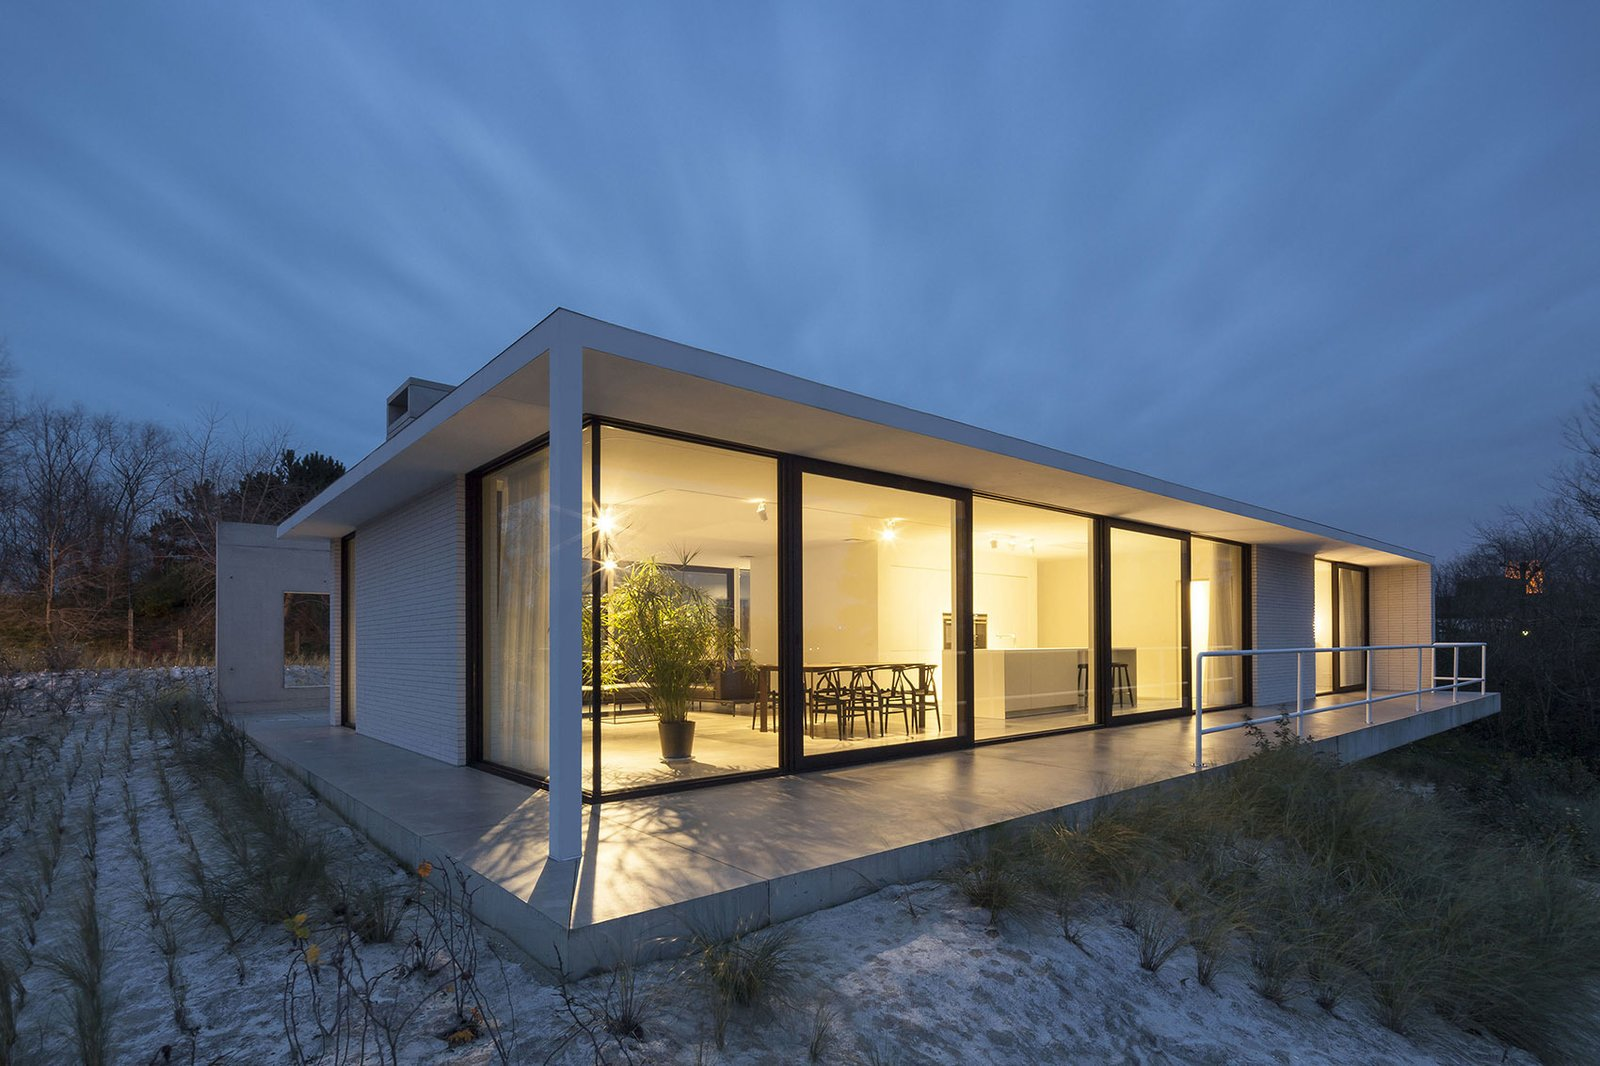 Photo 7 of 7 in Villa CD by Office O Architects